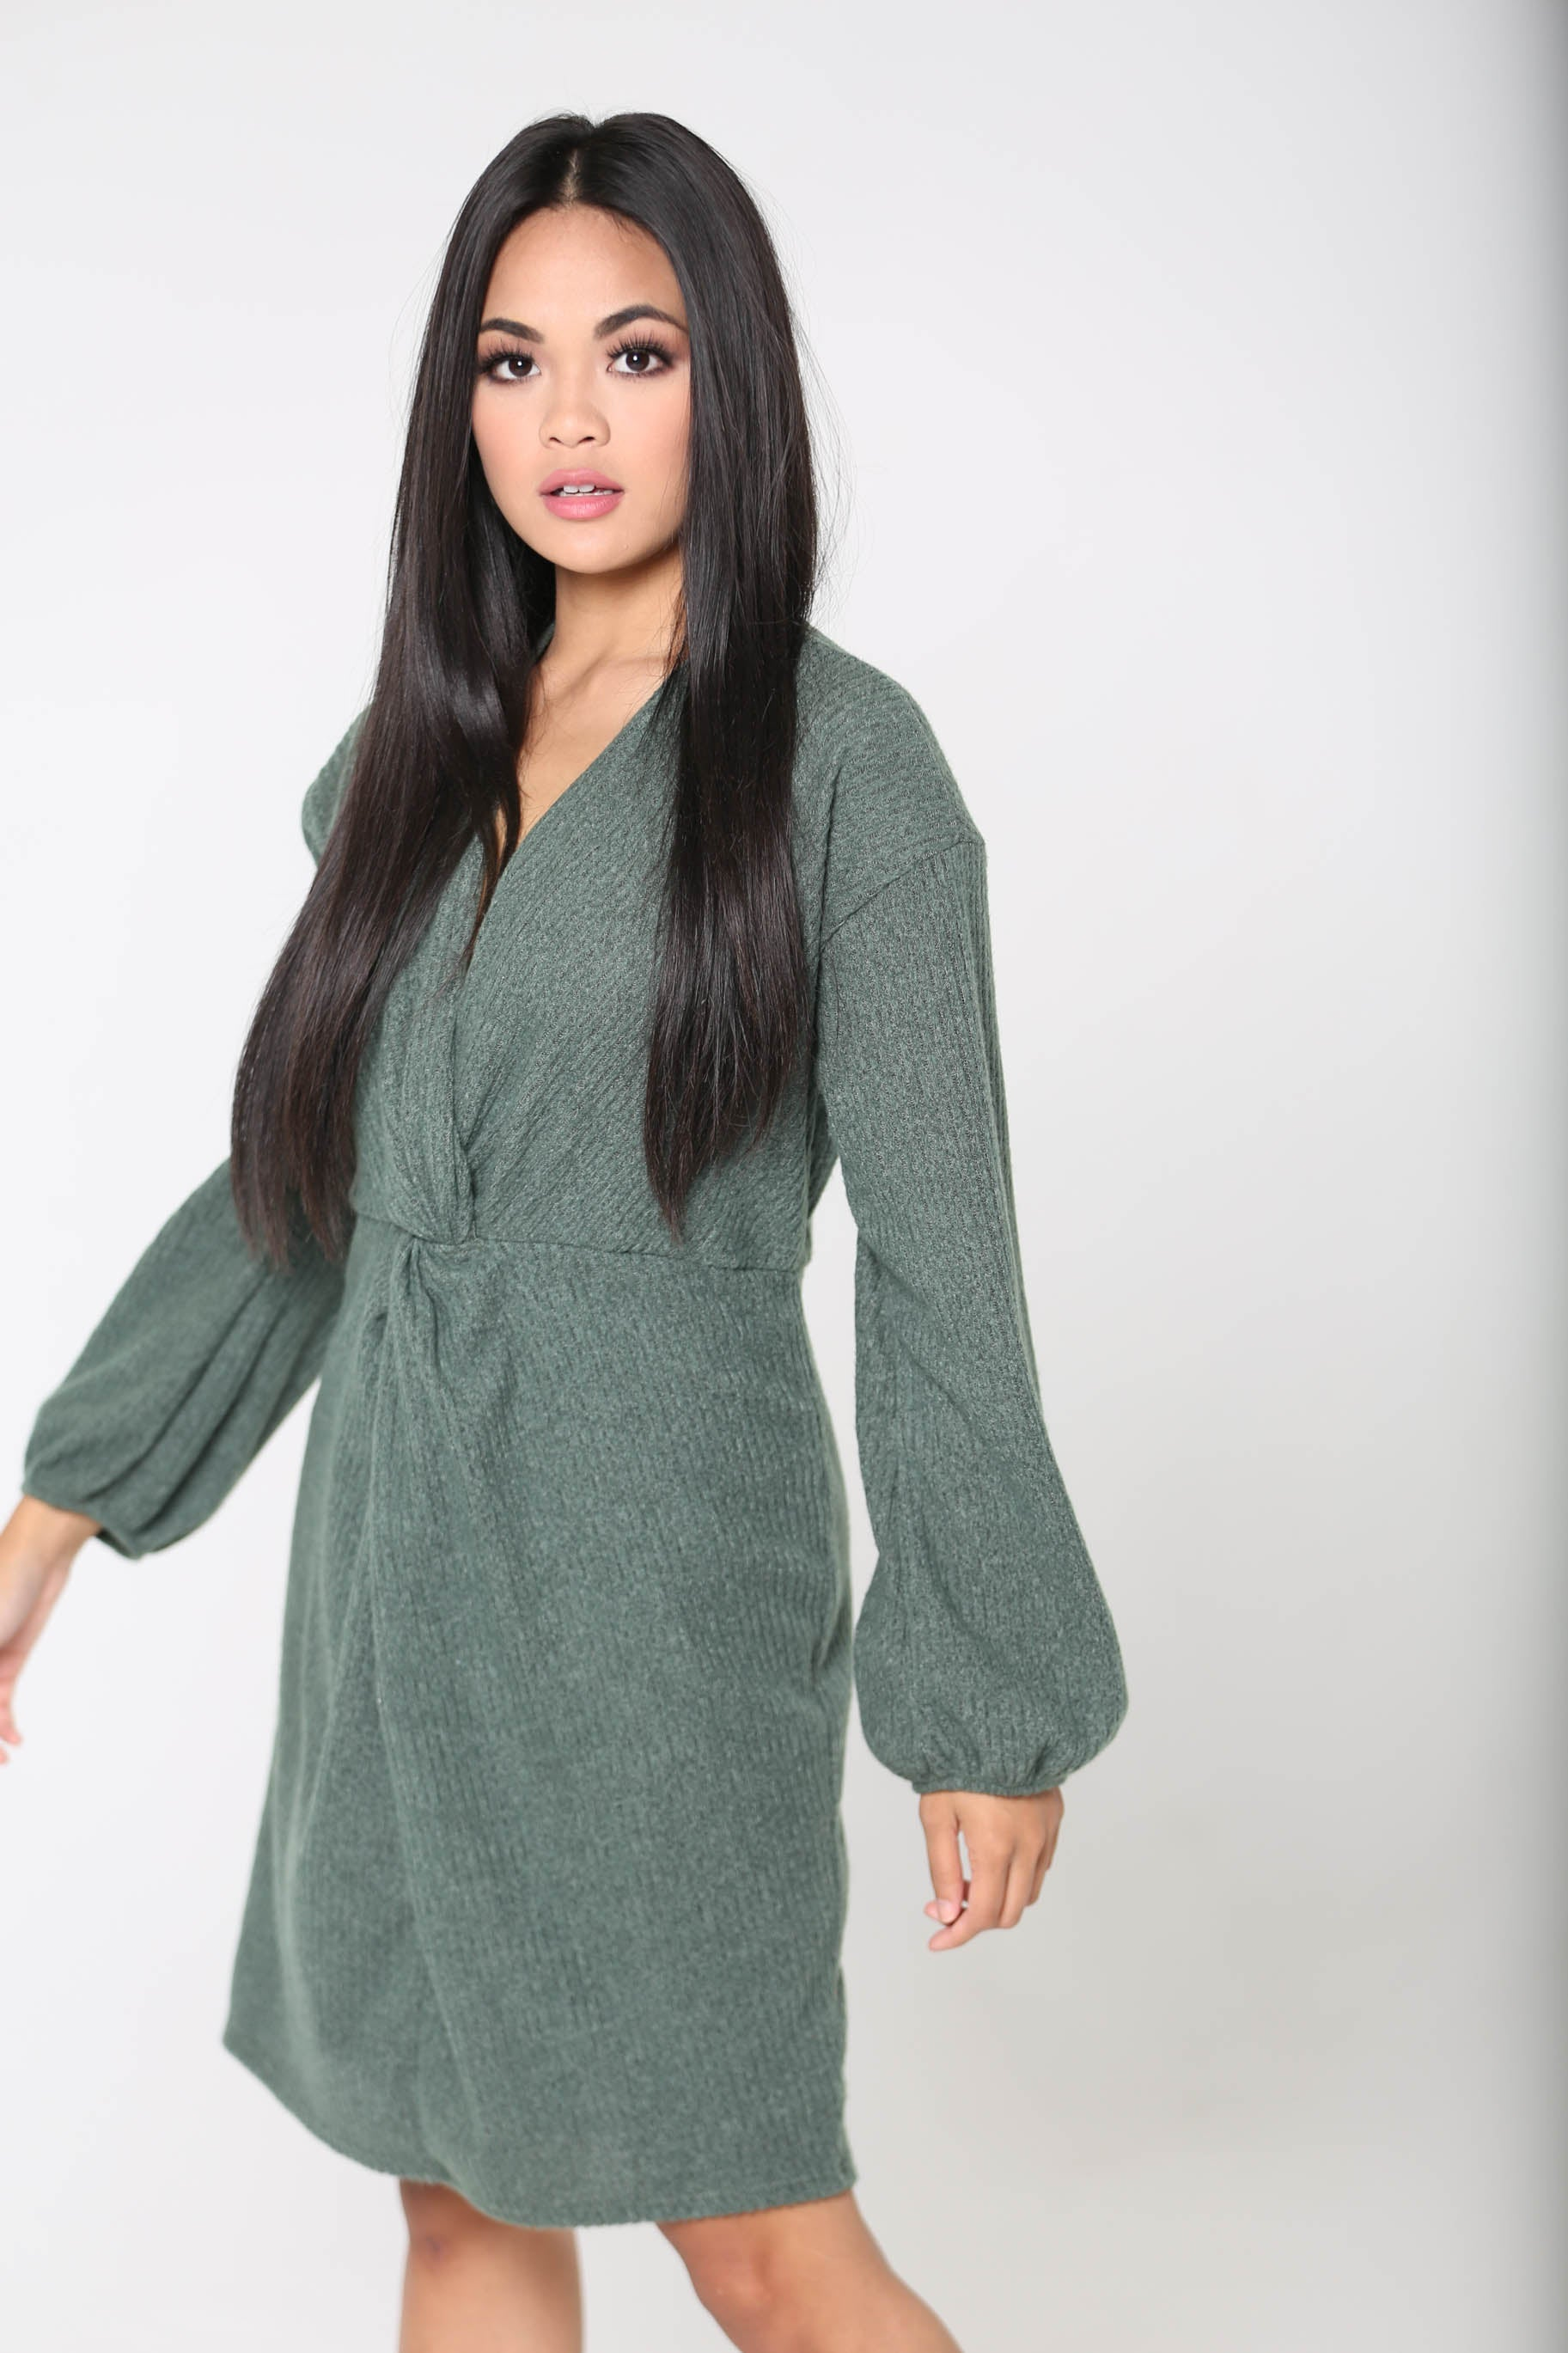 Wicked Witch Sweater Dress - The Flawless Babe Boutique